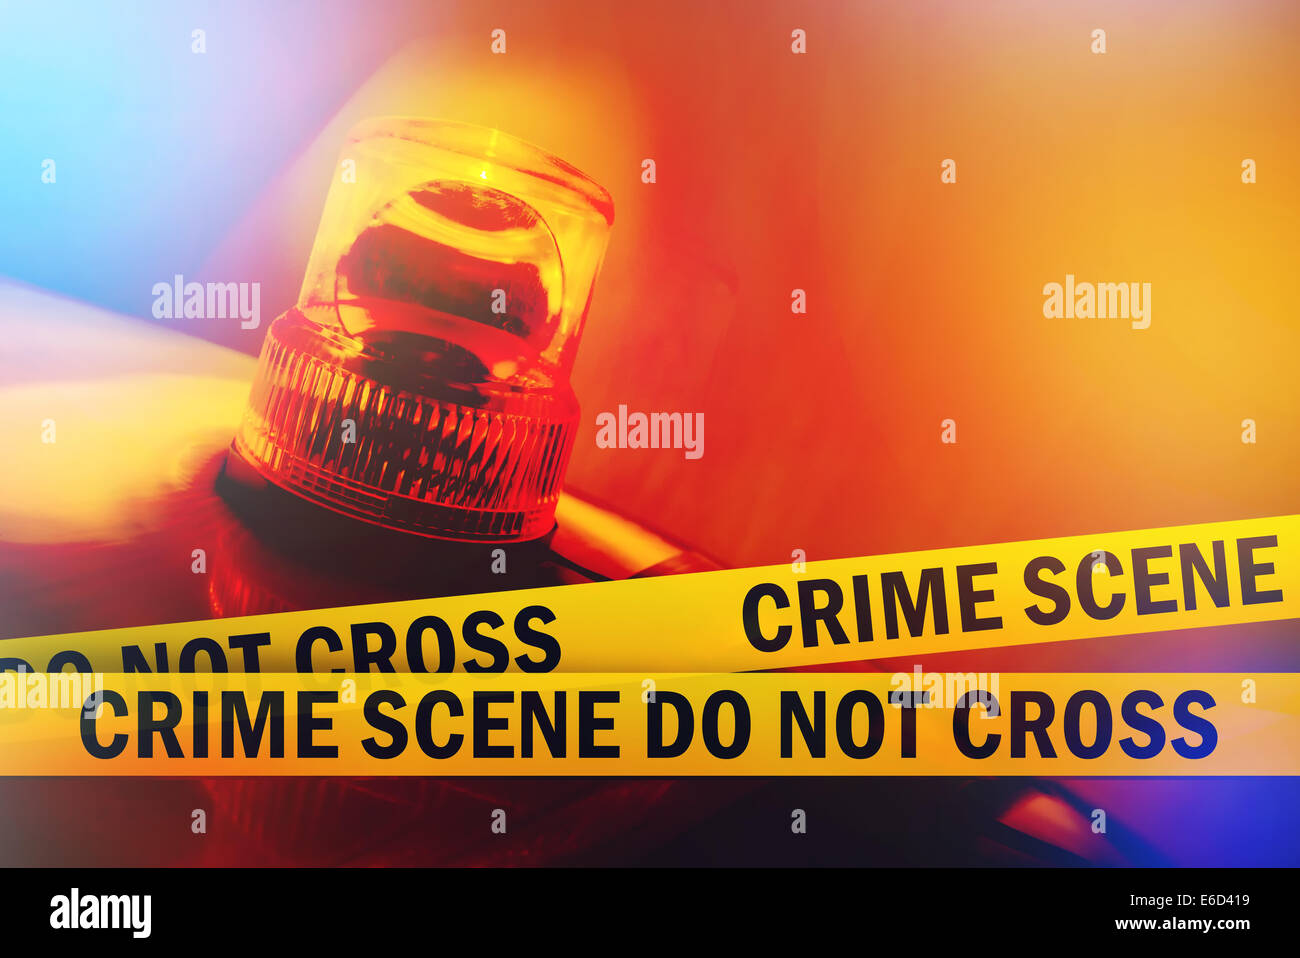 Crime Scene Do Not Cross Yellow Headband Tape and Orange flashing and revolving light. Criminal Scene Police Ribbon. - Stock Image